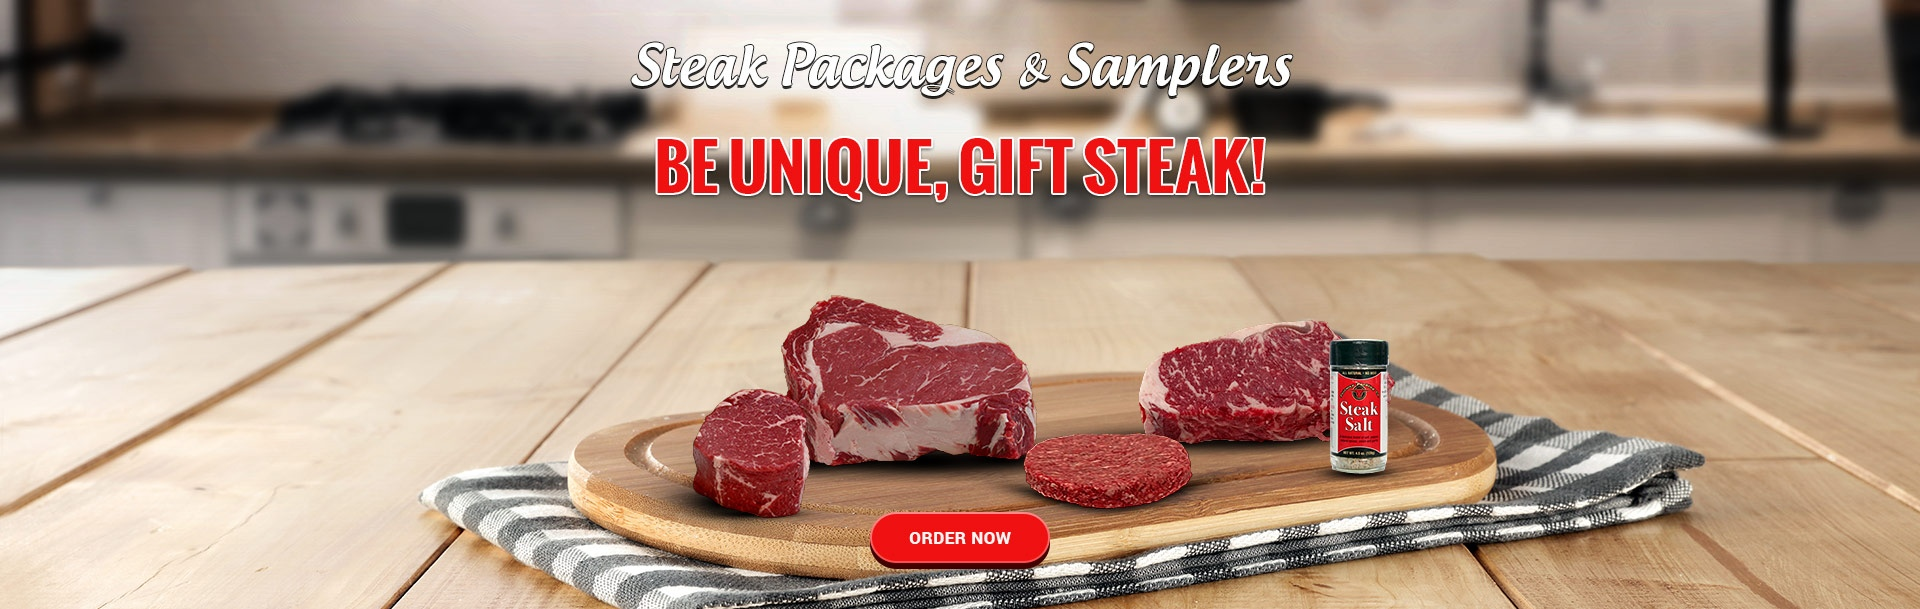 Steak Packages & Samplers